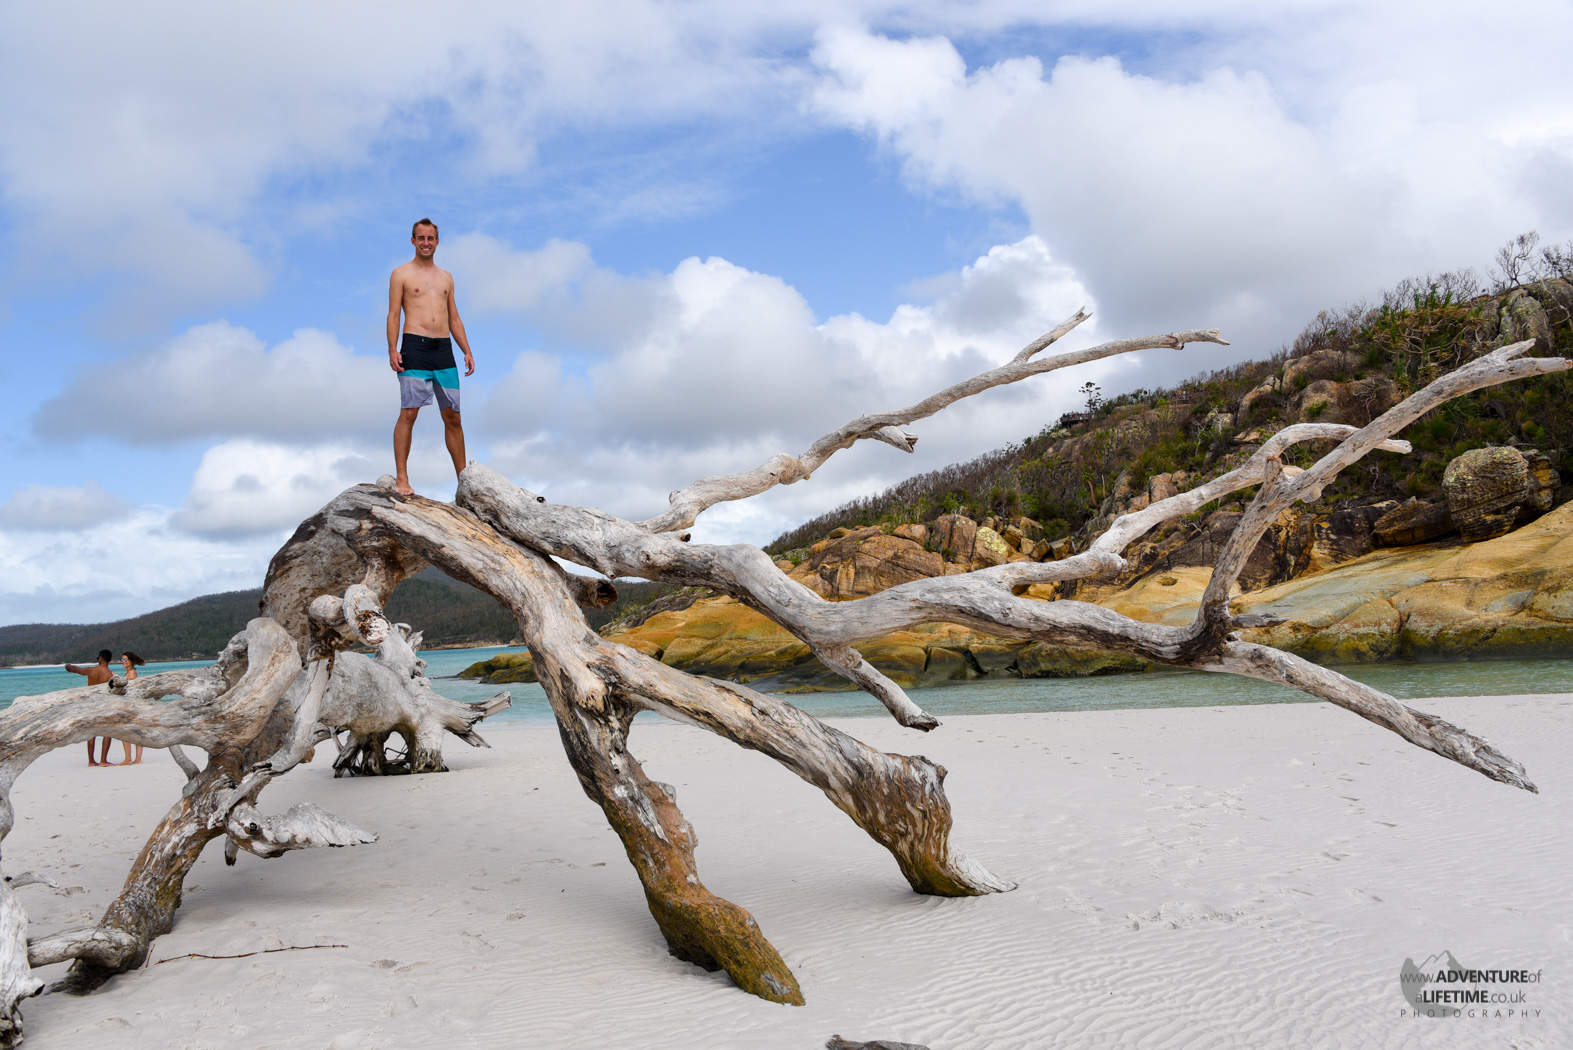 Michael at Whitehaven Beach